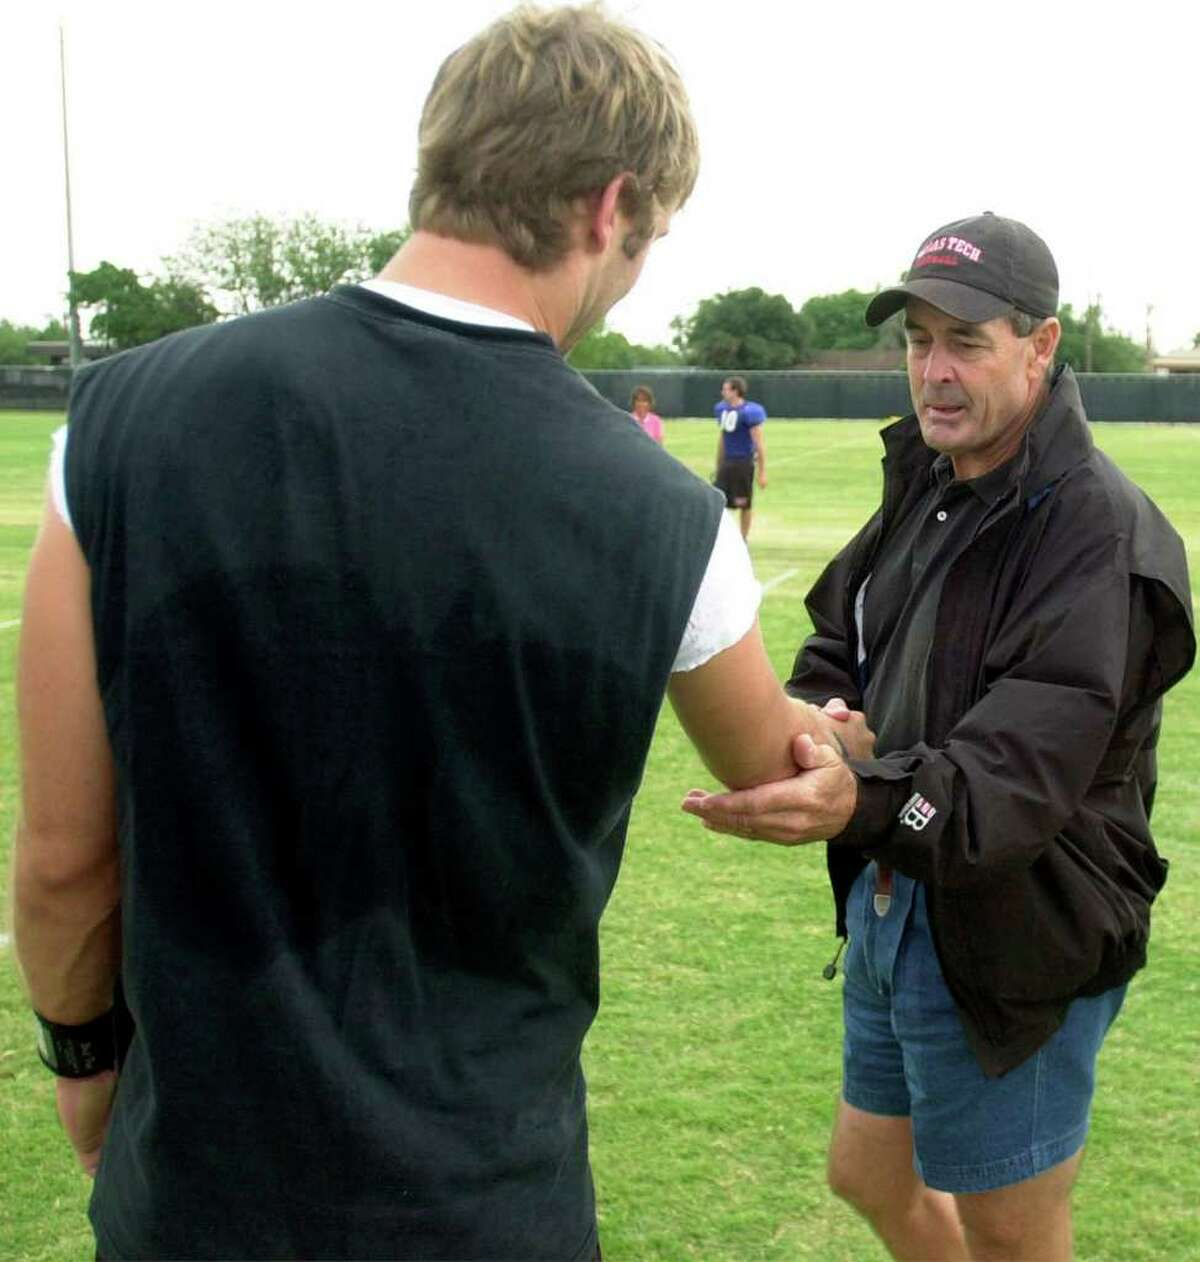 Tim Kingsbury, father of Kliff Kingsbury, mentored his son throughout high school and college football, being a former football coach himself. In this photo, Tim, right, checks out the arm of Kliff after practice Saturday morning, Aug. 10, 2002, at the Texas Tech football practice field in Lubbock, Texas.